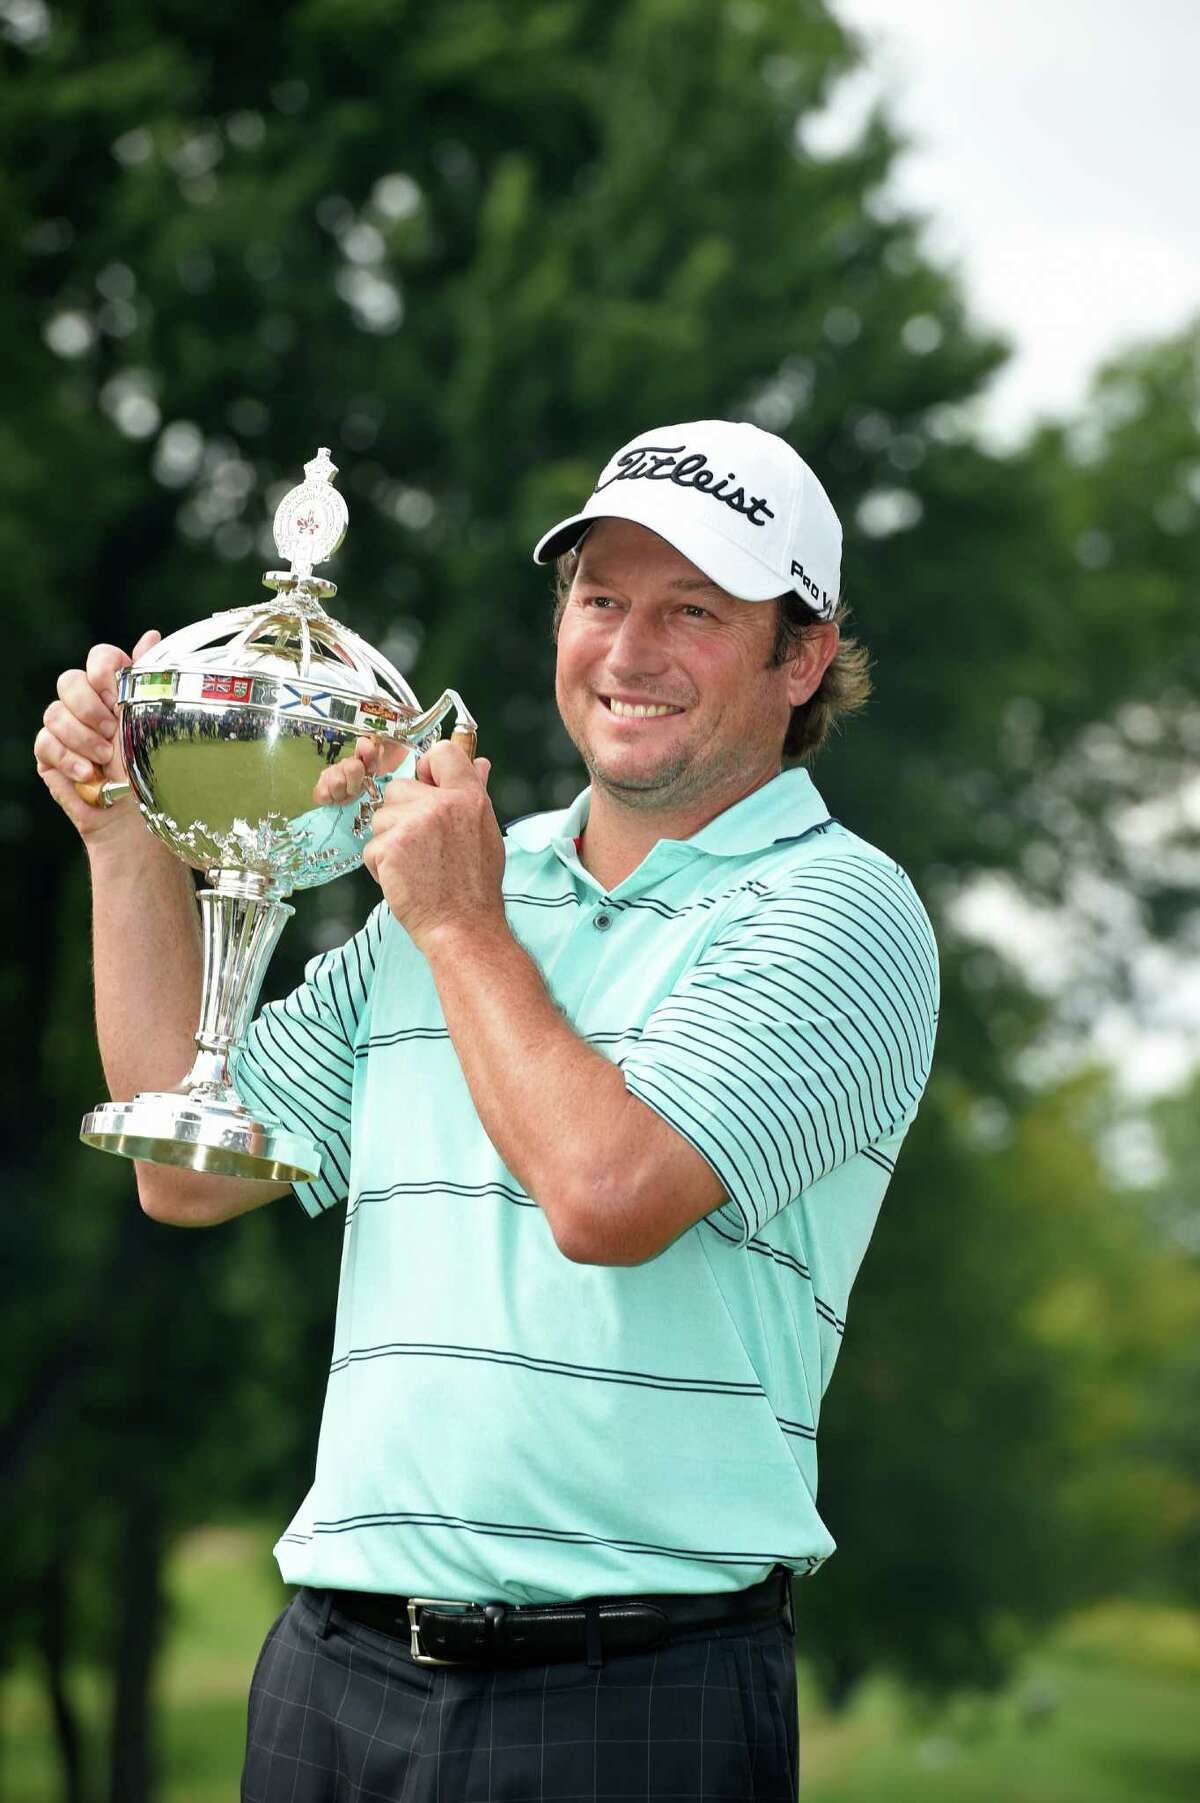 MONTREAL, QC - JULY 27: Tim Clark of South Africa holds the trophy after winning the RBC Canadian Open at the Royal Montreal Golf Club on July 27, 2014 in Montreal, Quebec, Canada. (Photo by Charles Laberge/Getty Images) ORG XMIT: 461900033